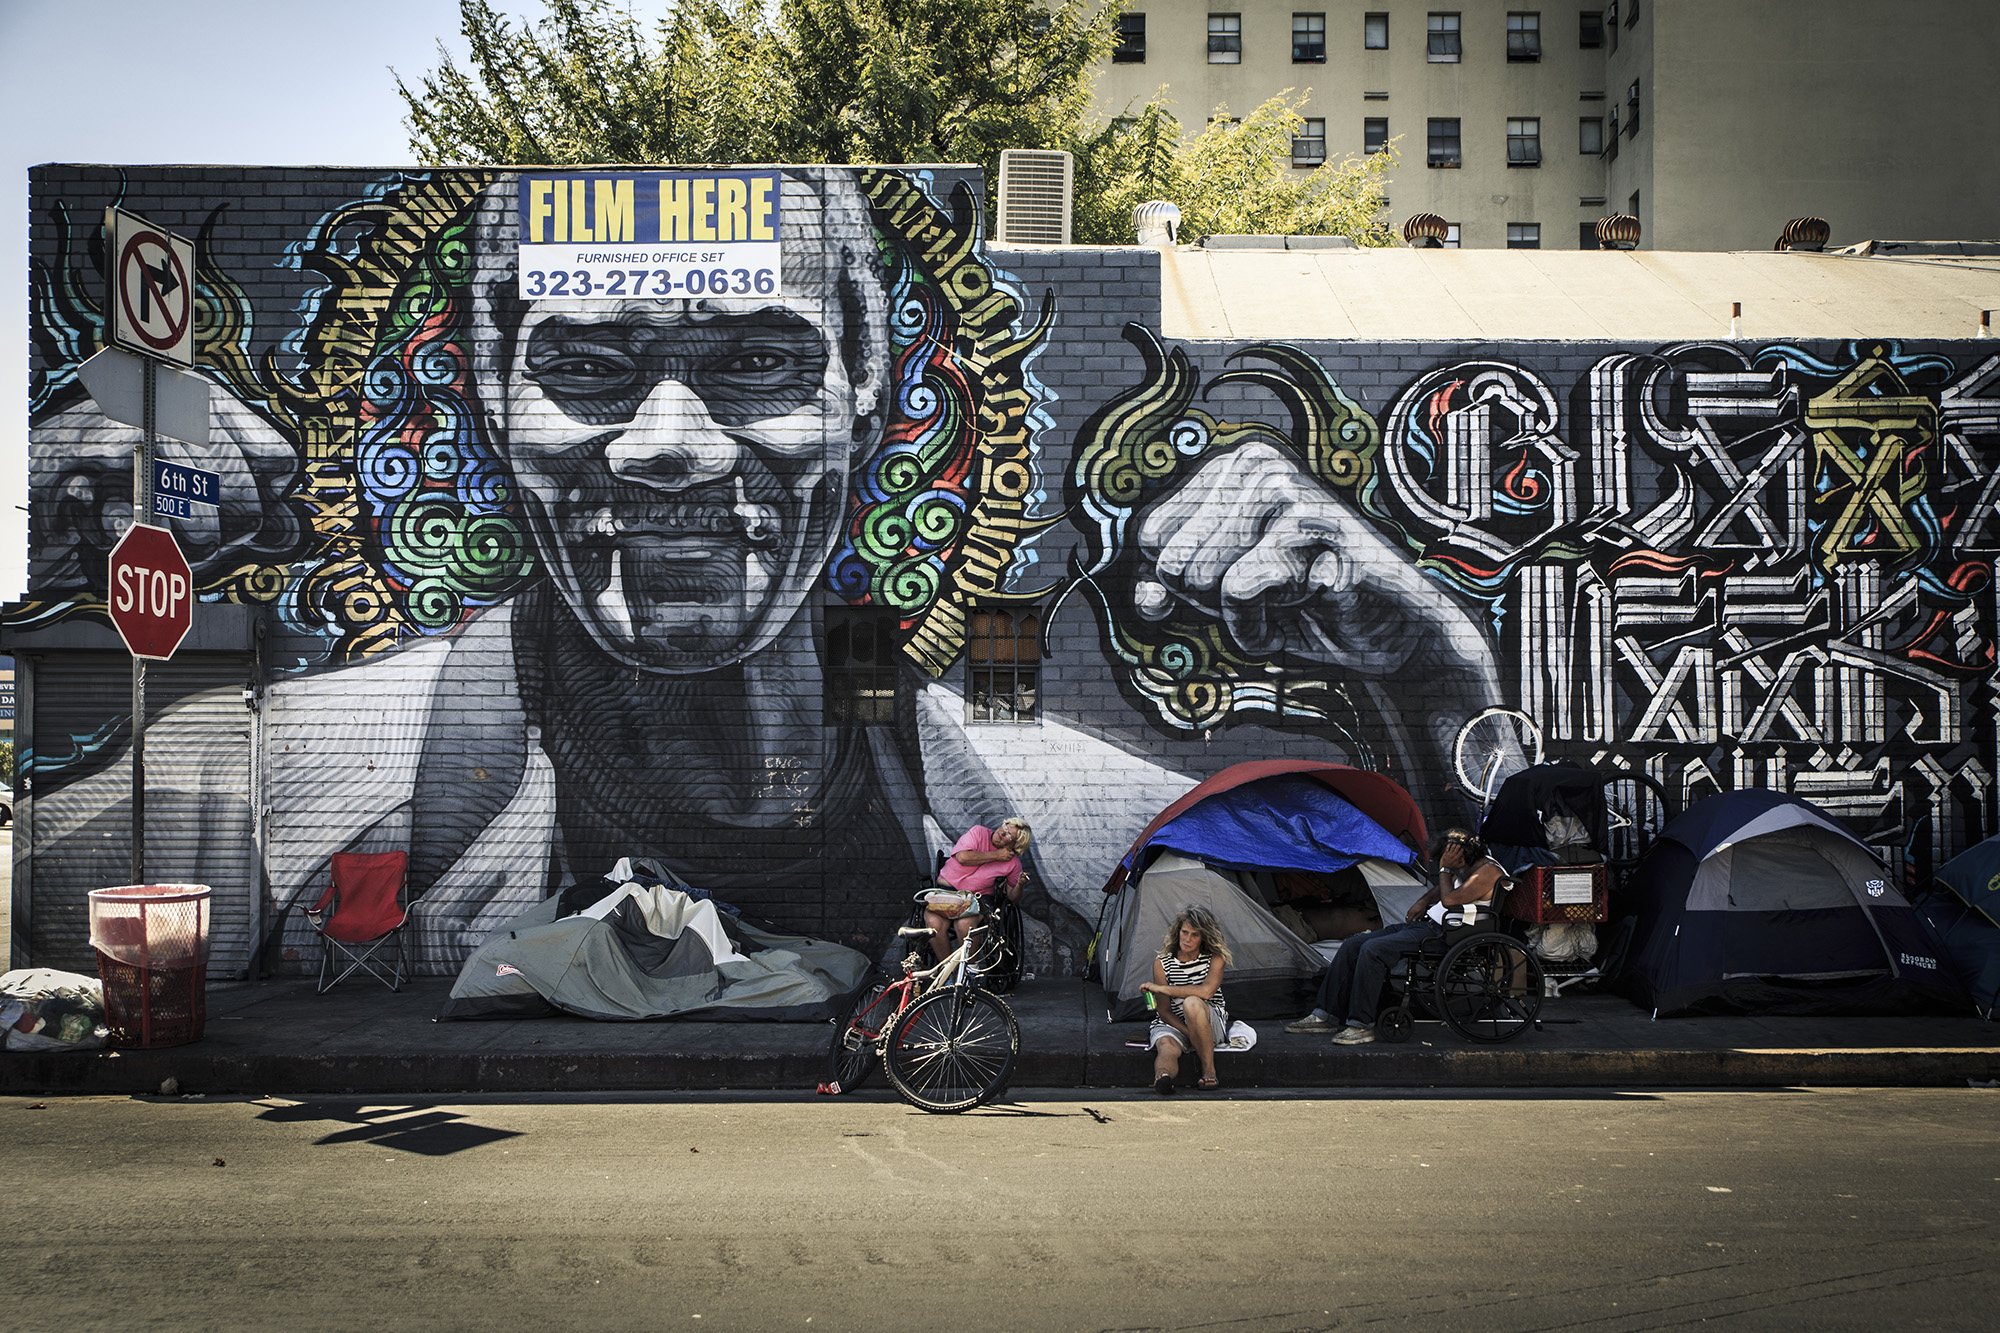 Scenes from Skid Row in Los Angeles